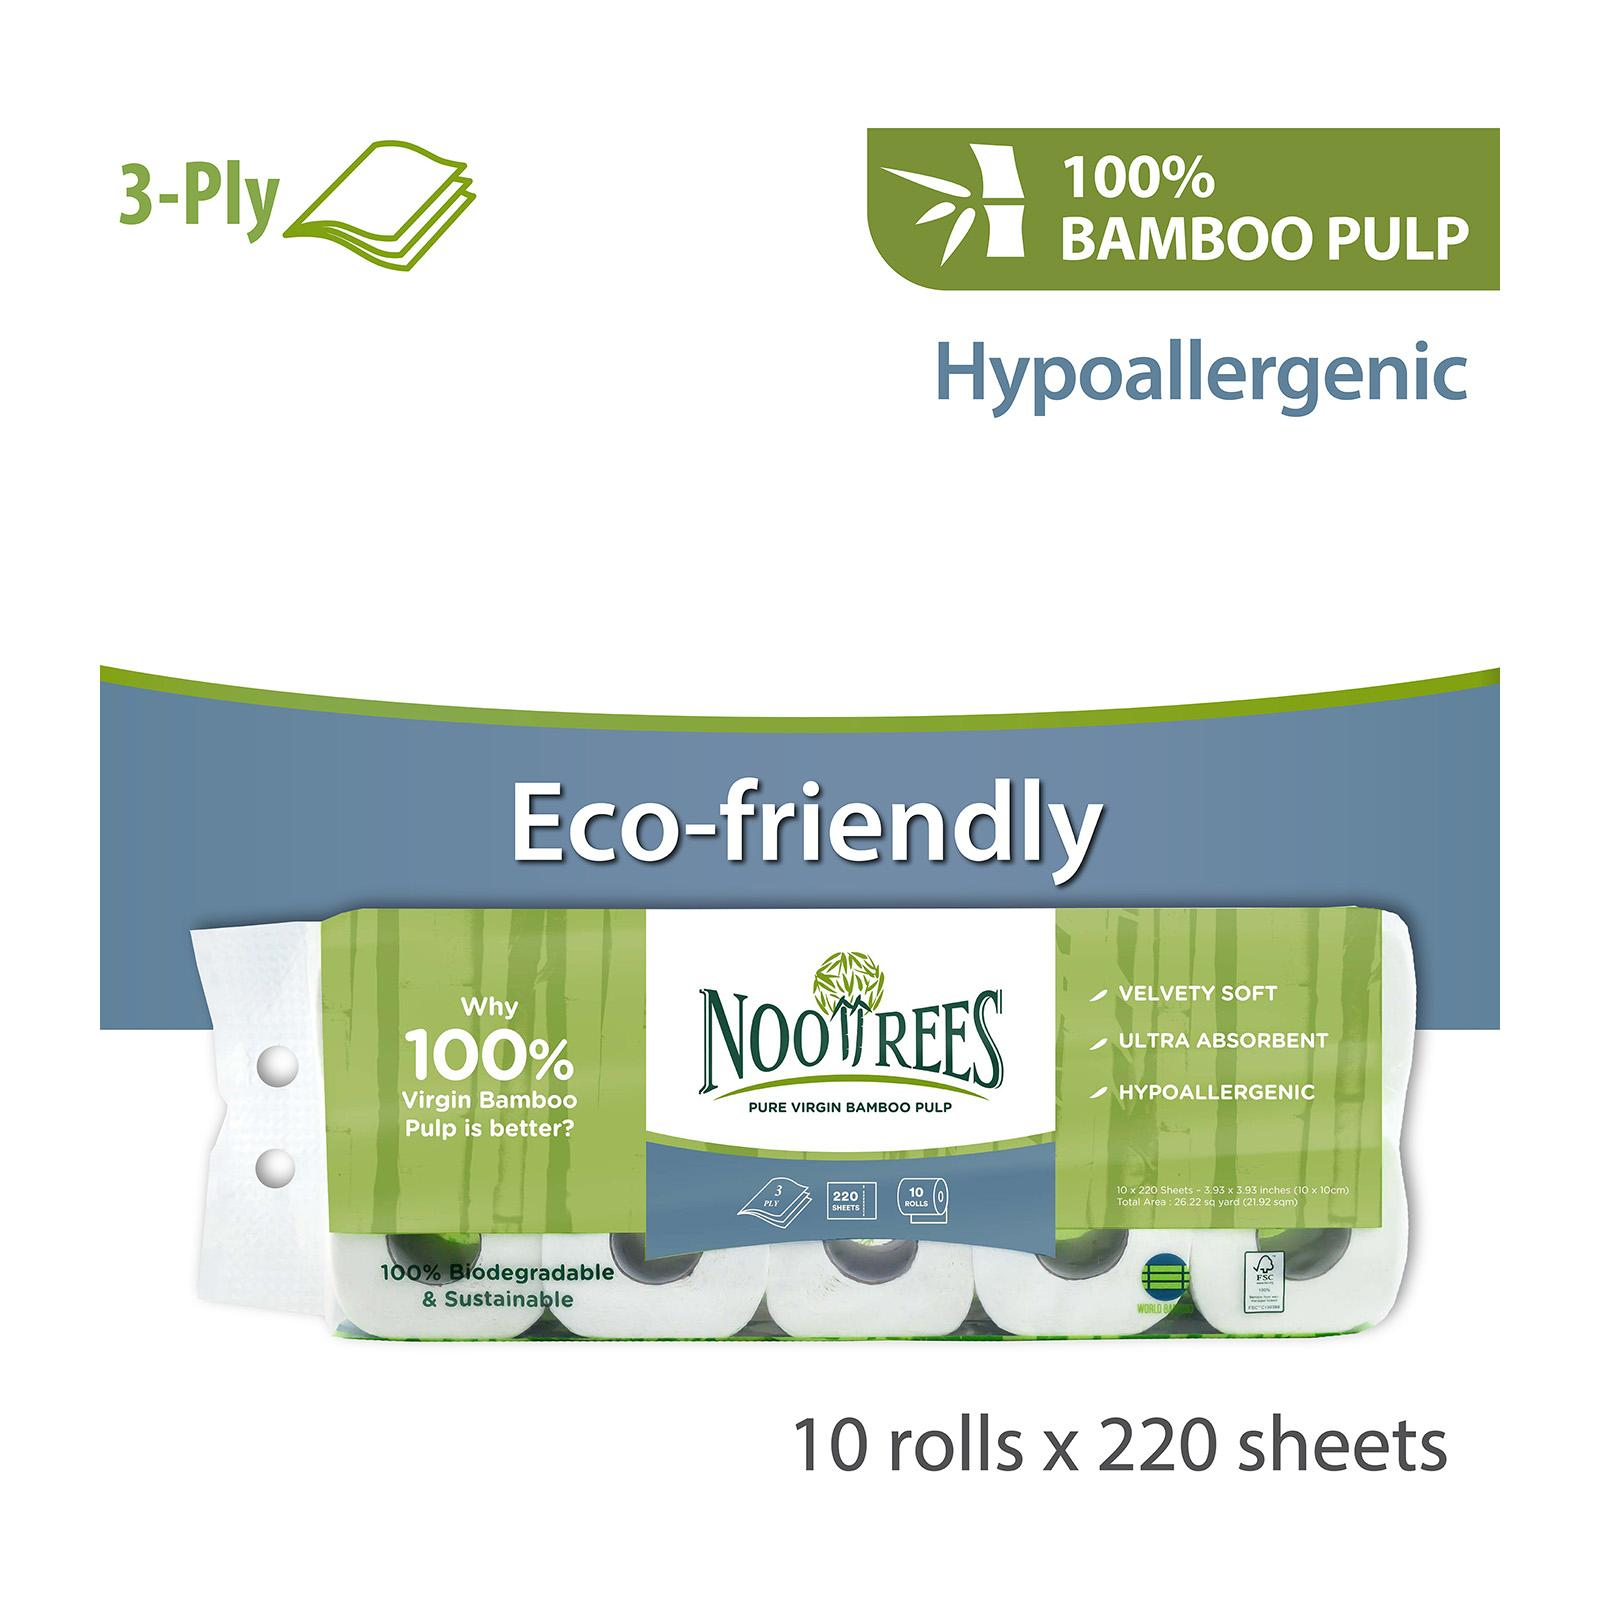 NooTrees Bamboo Ecoluxe 3-Ply Bathroom Tissue - 10 Rolls